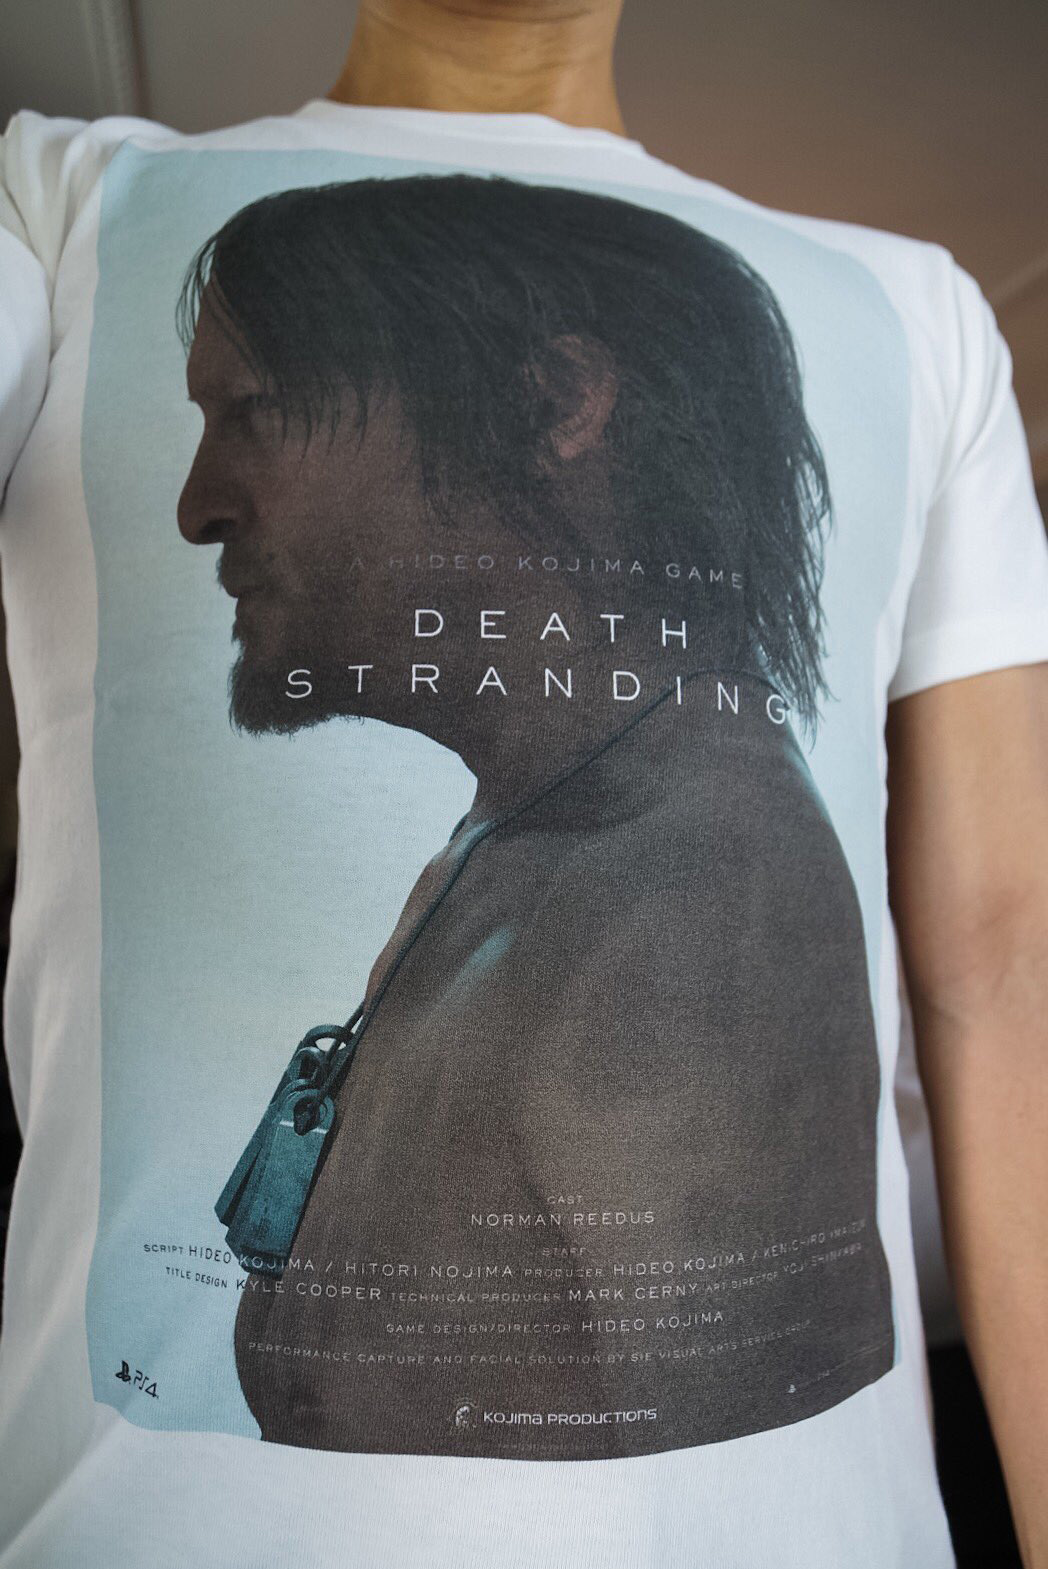 Hideo-Kojima-Death-Stranding-Shirt